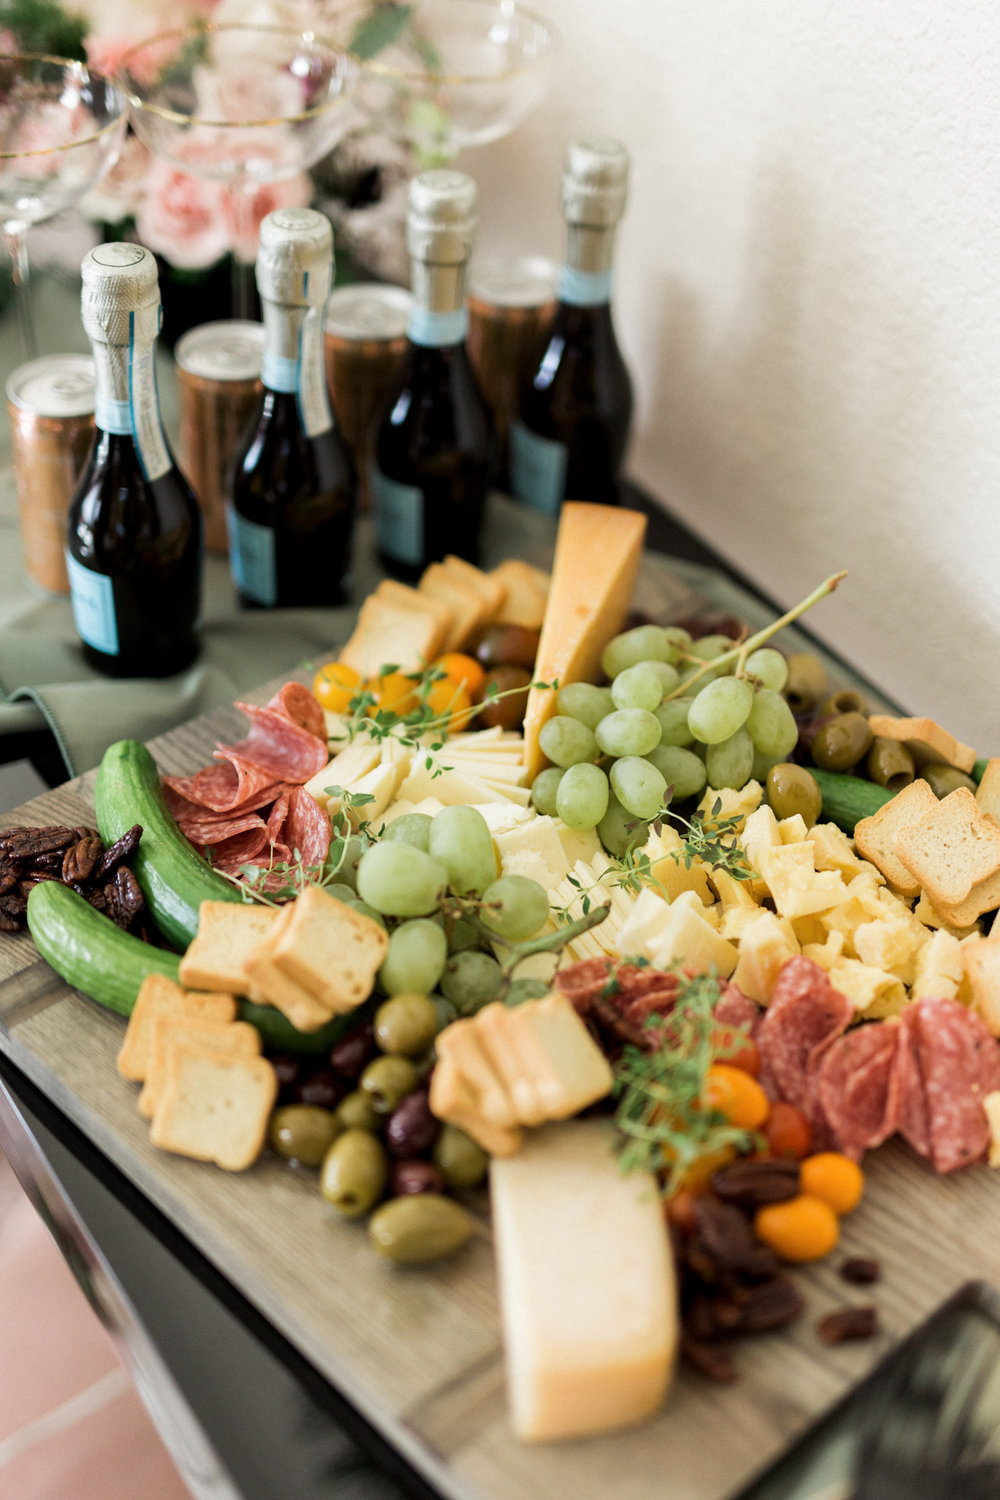 Cocktail party cheese plate ideas | A Fabulous Fete